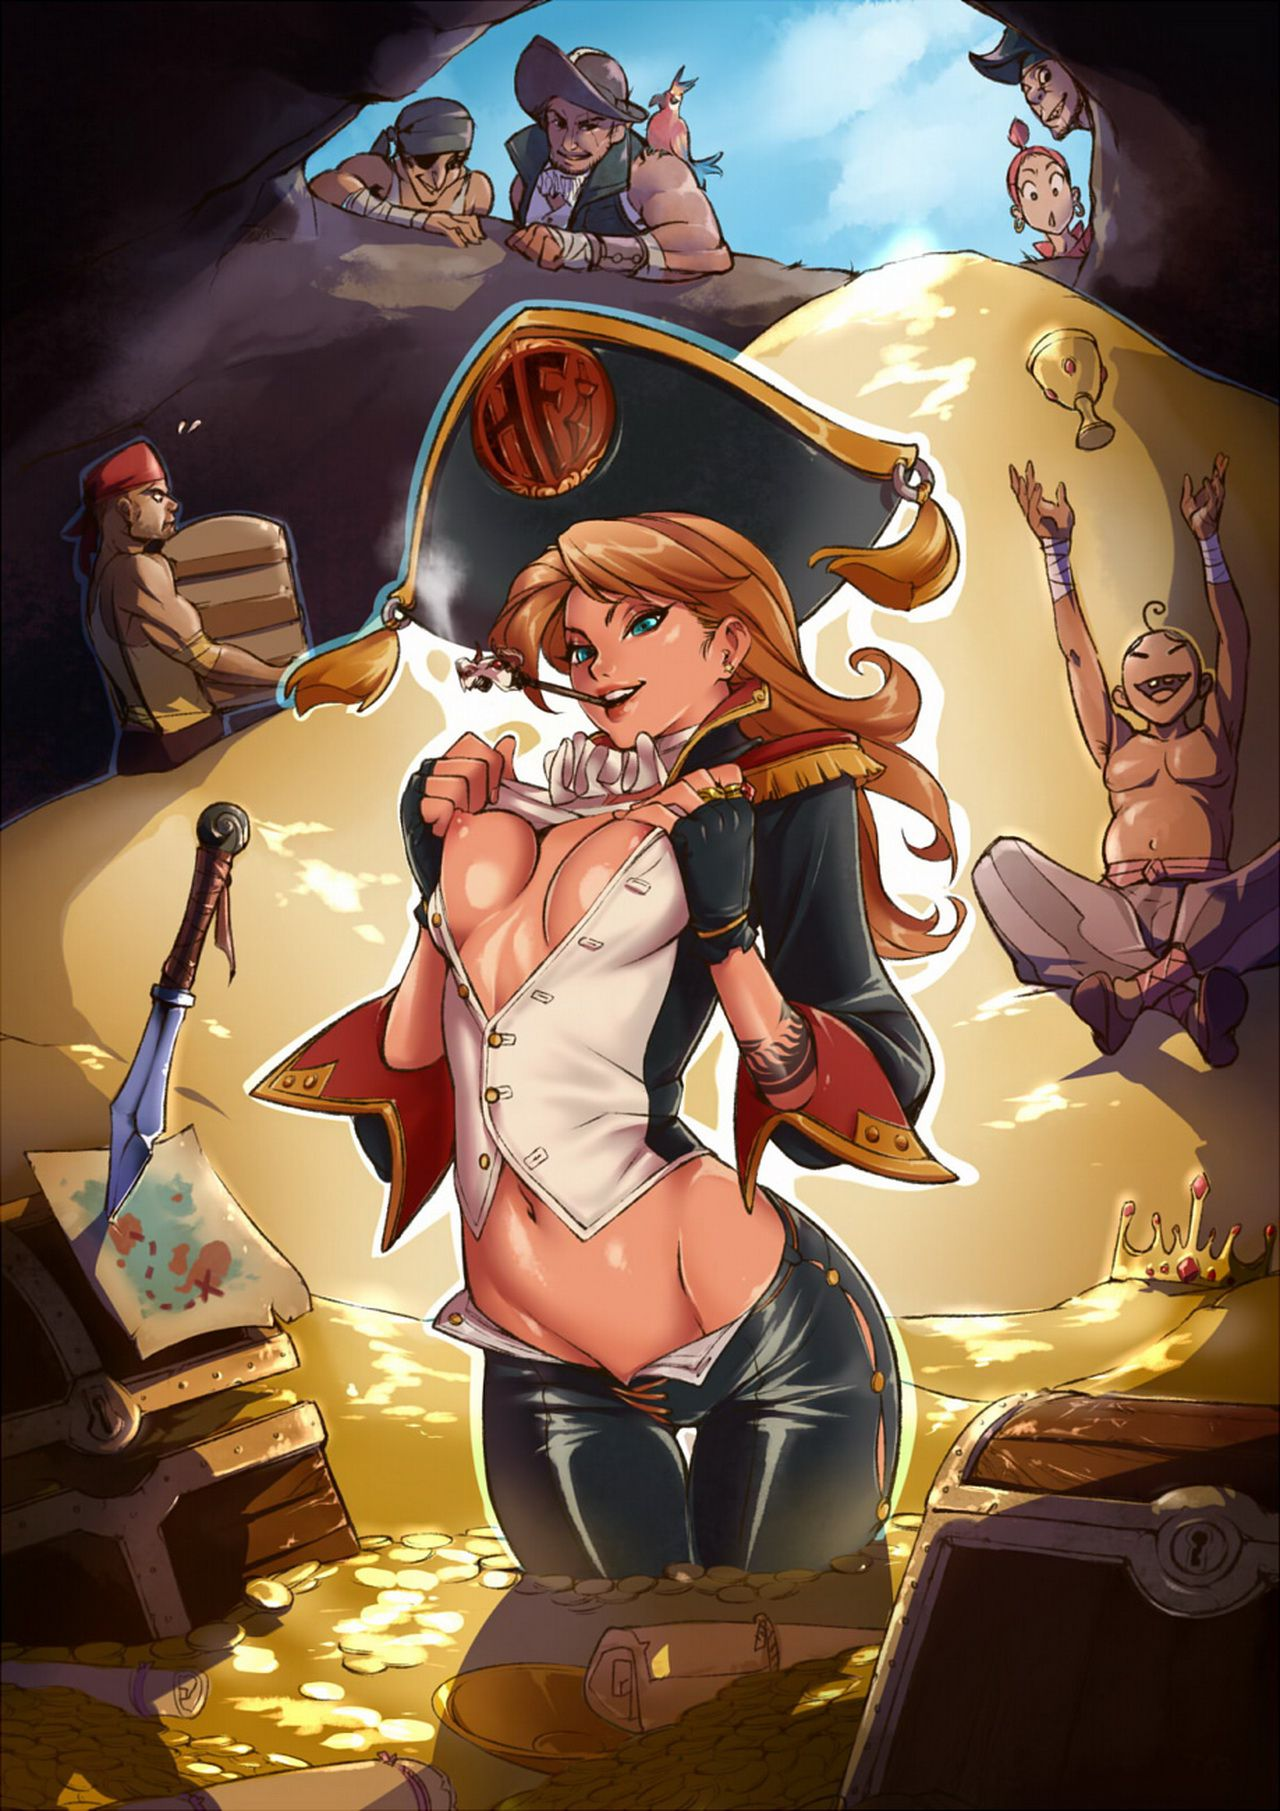 Female pirate porn pictures naked gallery